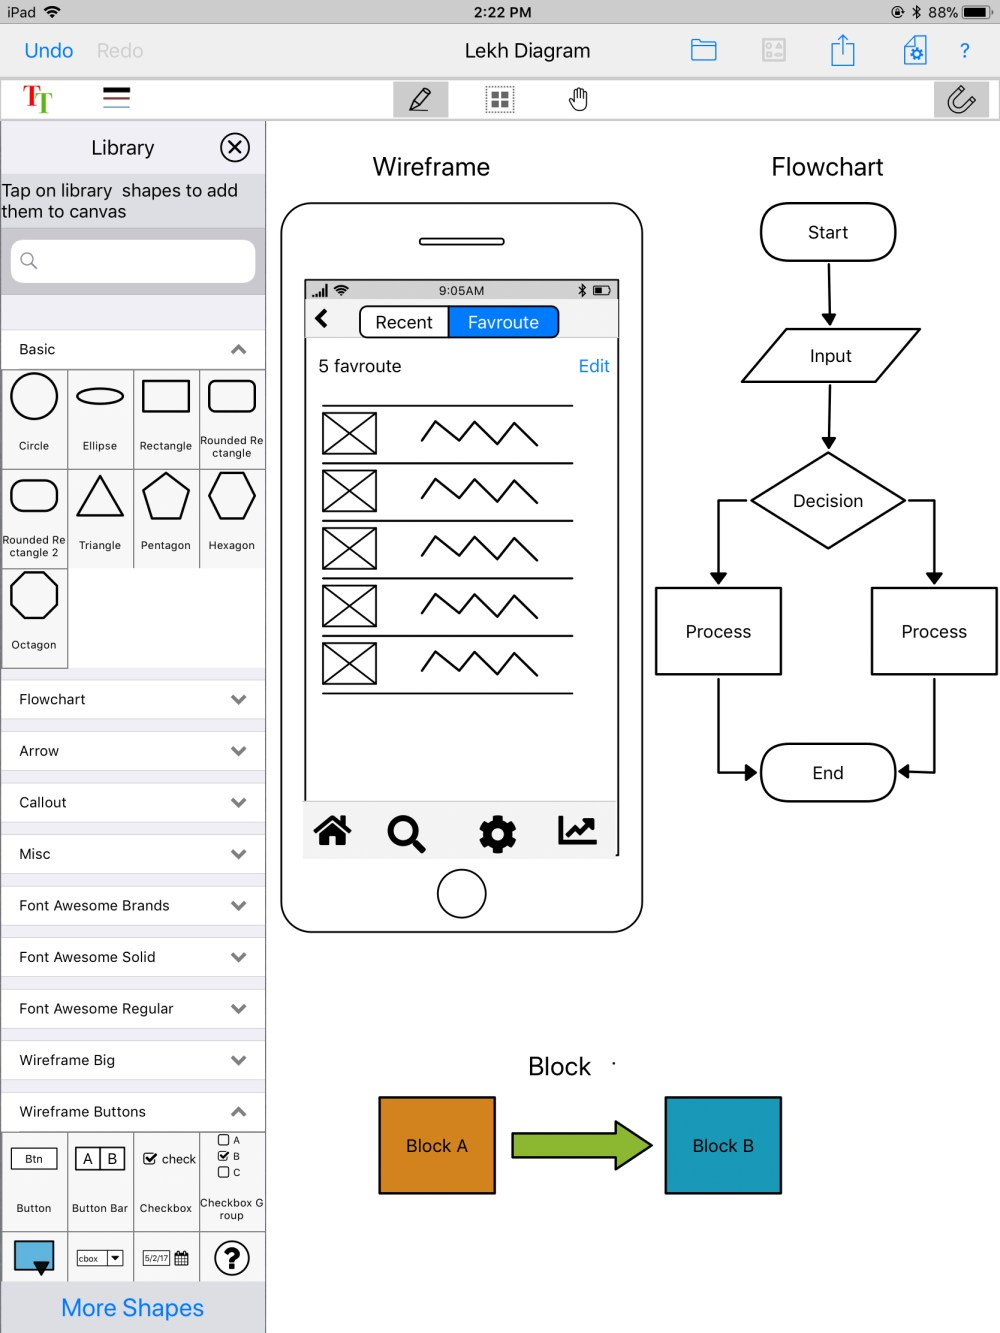 medium resolution of create beautiful diagrams and ui wireframes with lekh diagram a sketch recognition diagramming app on ios and android devices